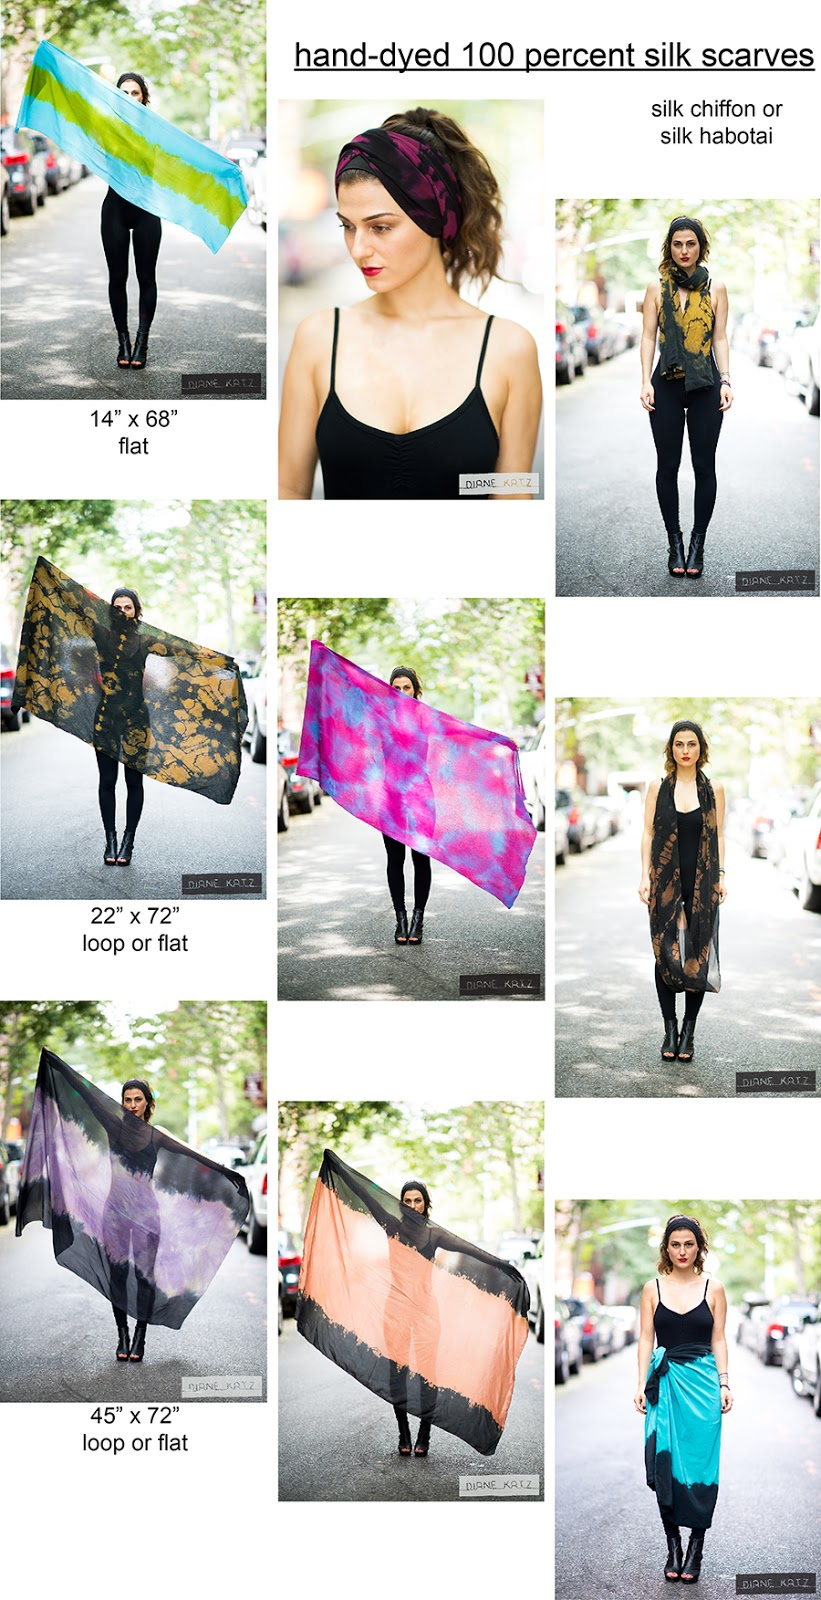 size and price menu for silk scarves